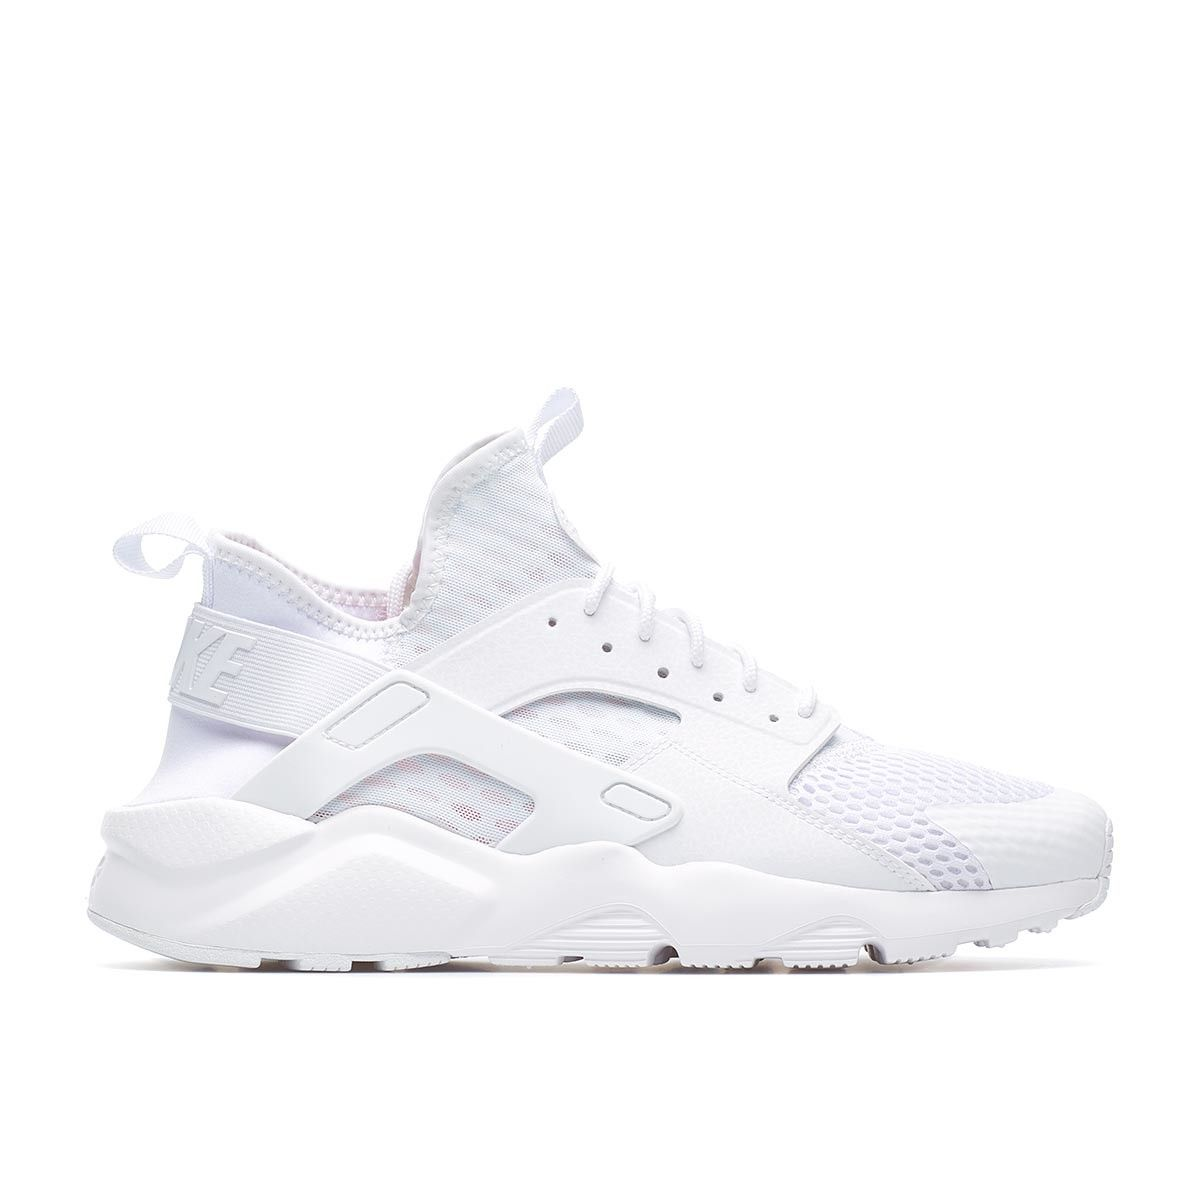 low priced 54631 693d0 ... Nike Air Huarache Run Ultra Br from the Summer 16 collection in white  ...